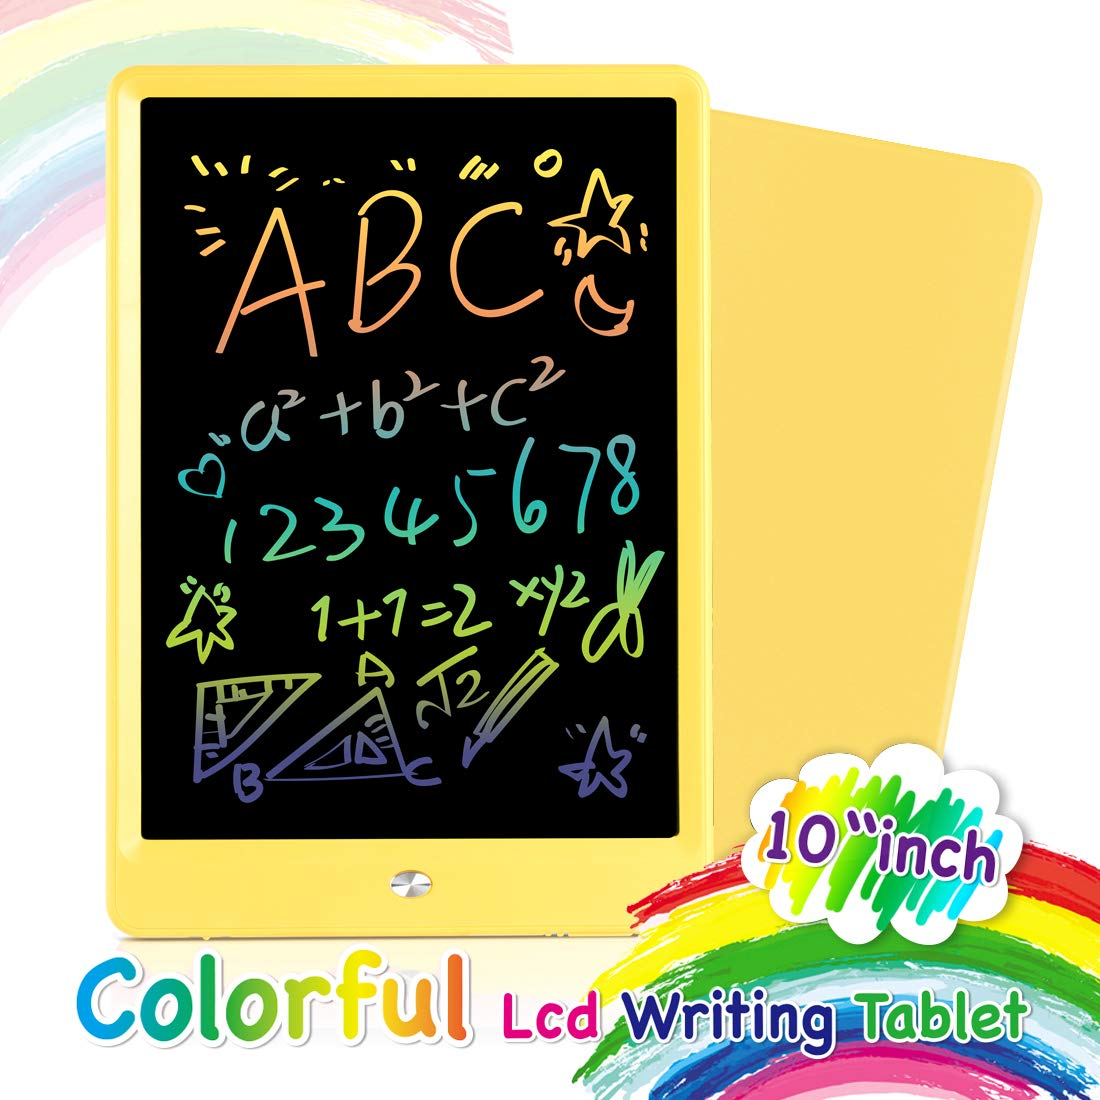 Orsen LCD Writing Tablet 10 Inch, Colorful Doodle Board Drawing Tablet, Erasable Reusable Writing Pad, Educational Boys Girls Toys Gifts for 2-6 Year Old Girls Boys(Yellow)